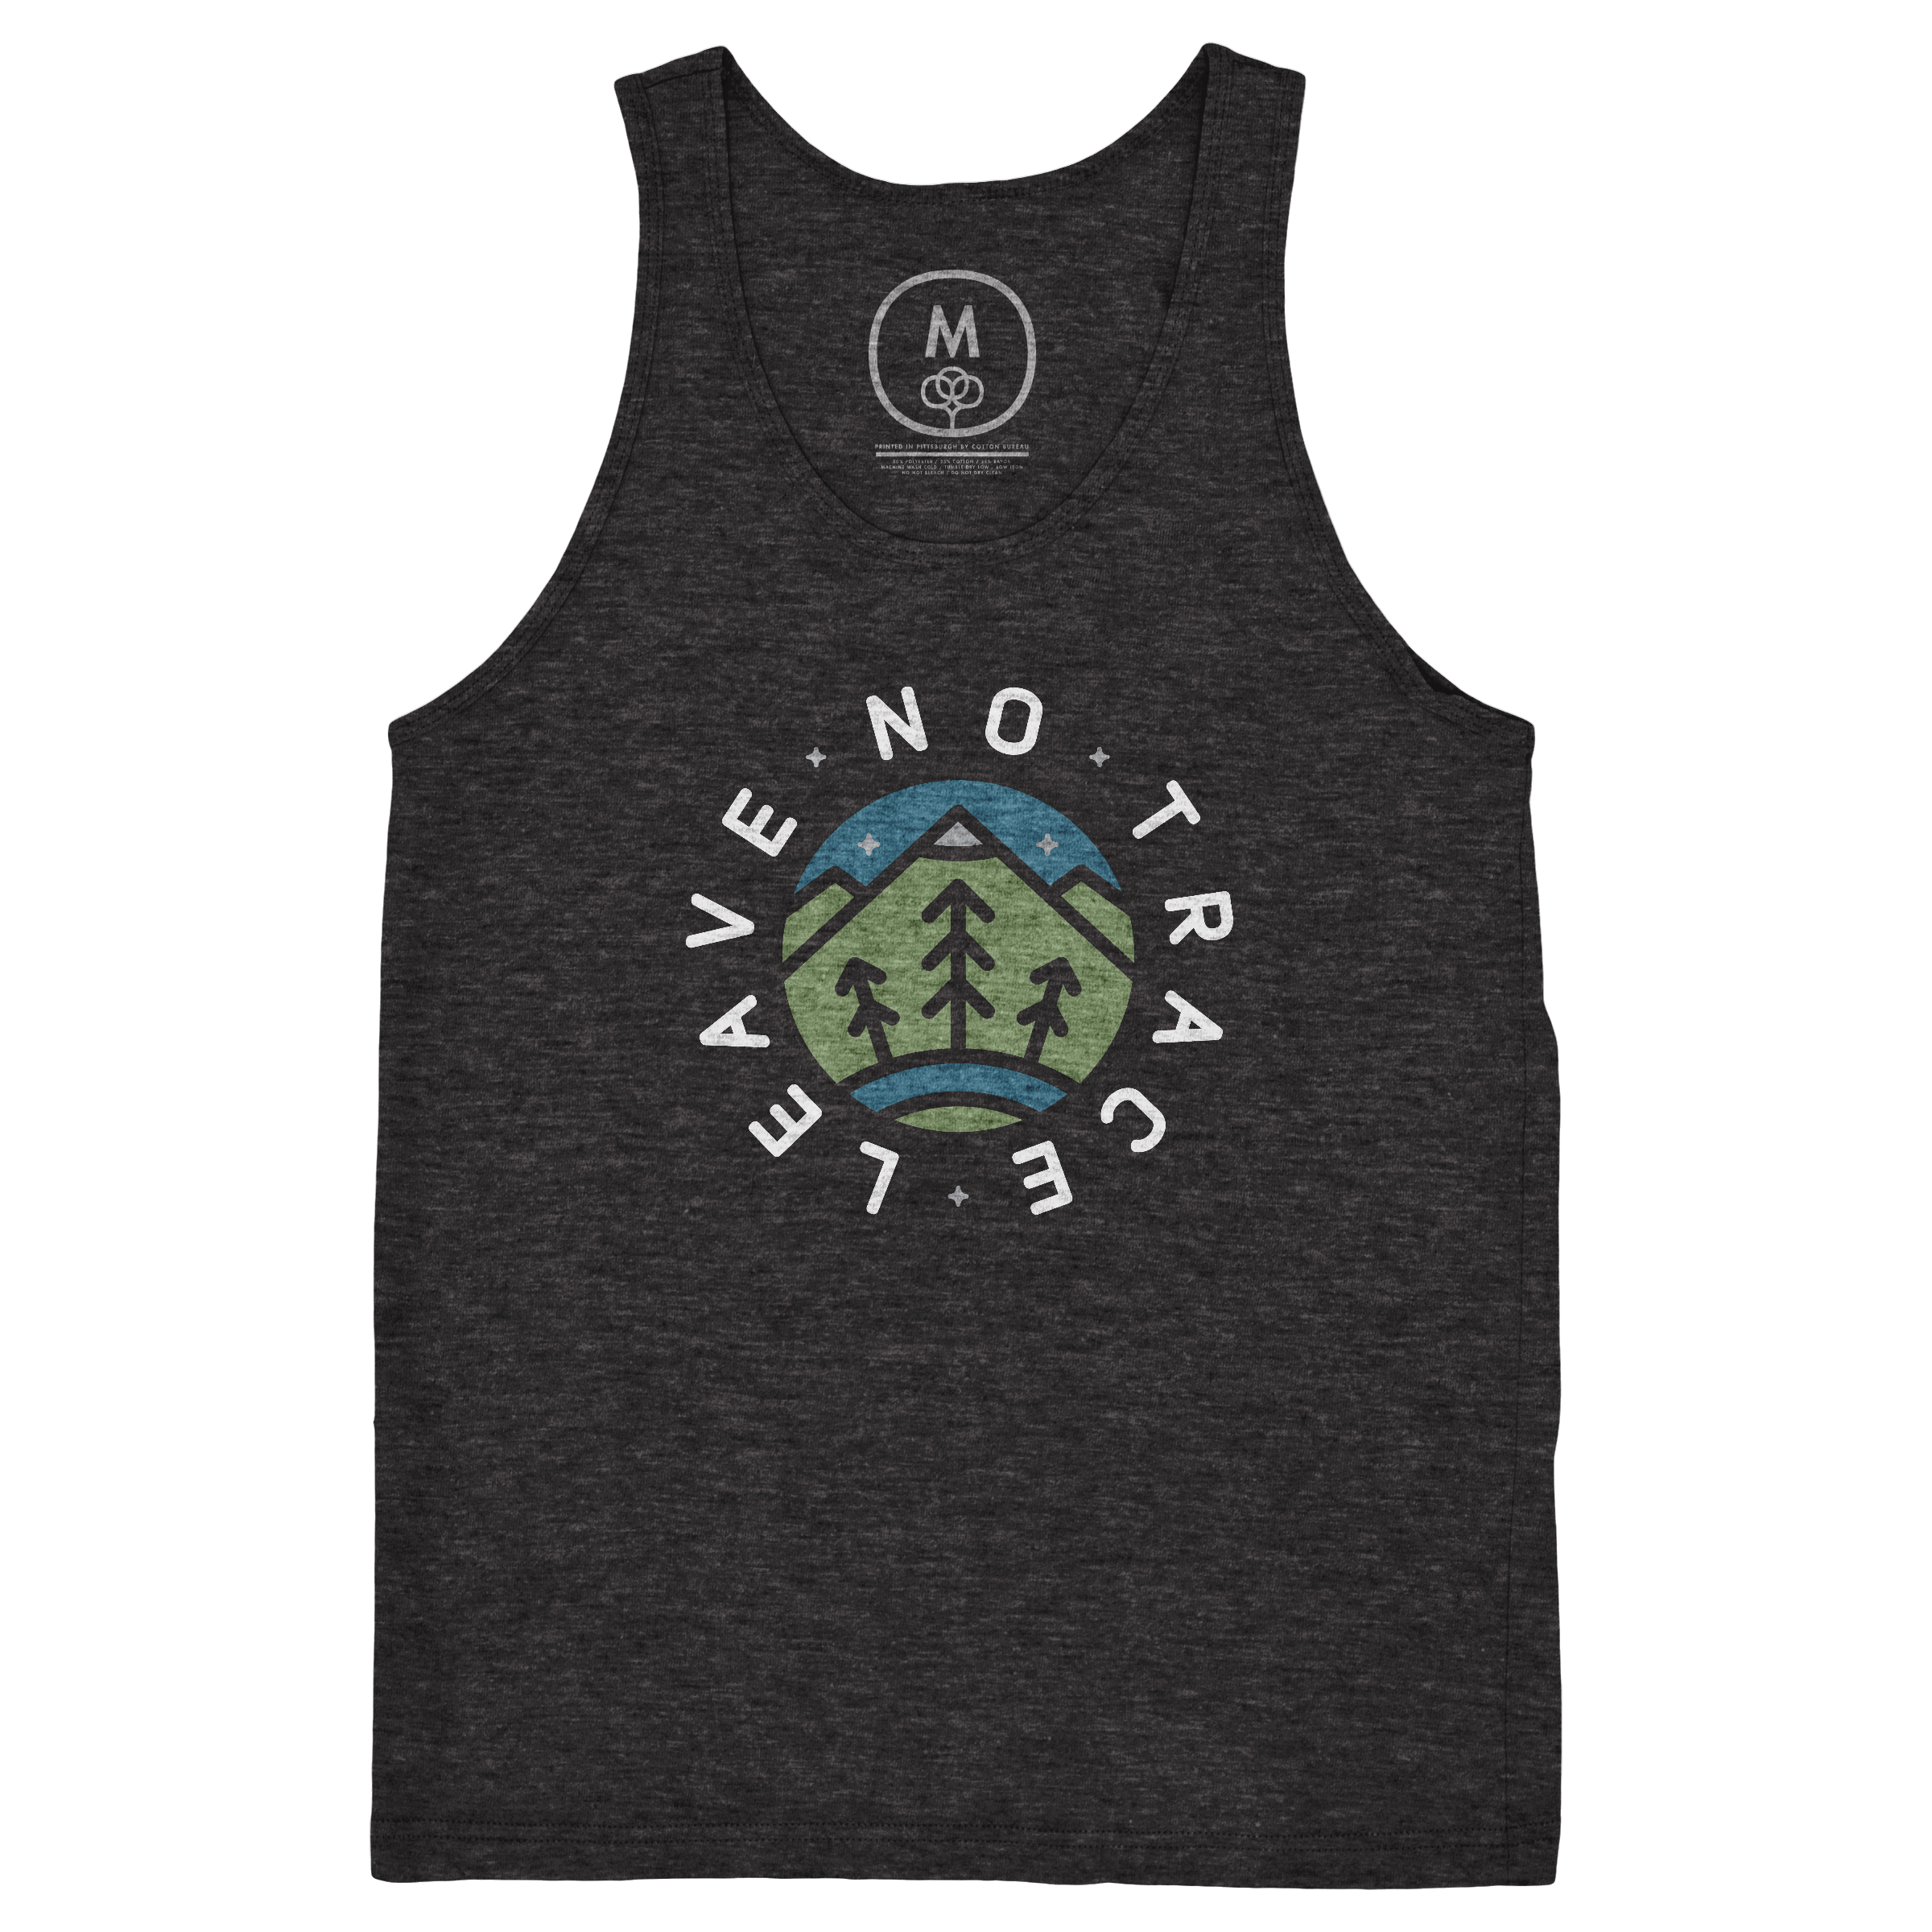 Leave No Trace Tank Top